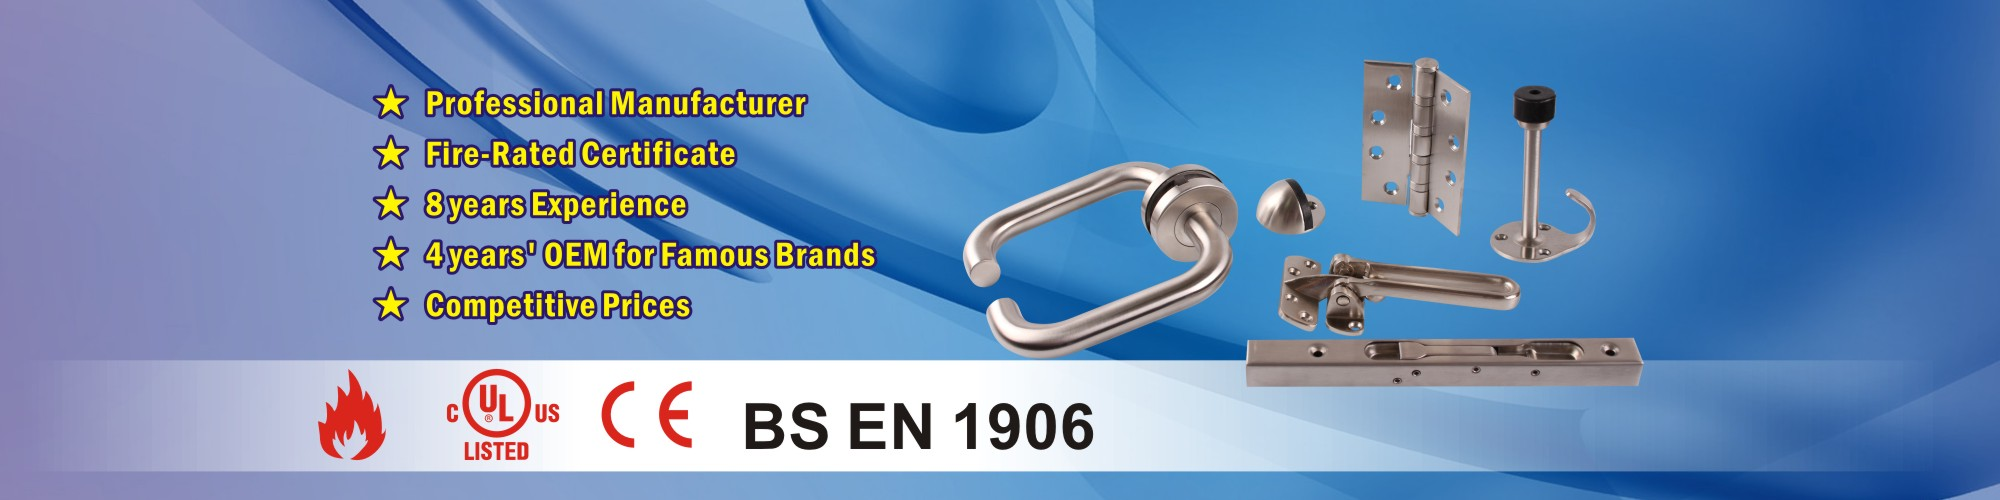 Door Accessories-D&D door hardware manufacturer